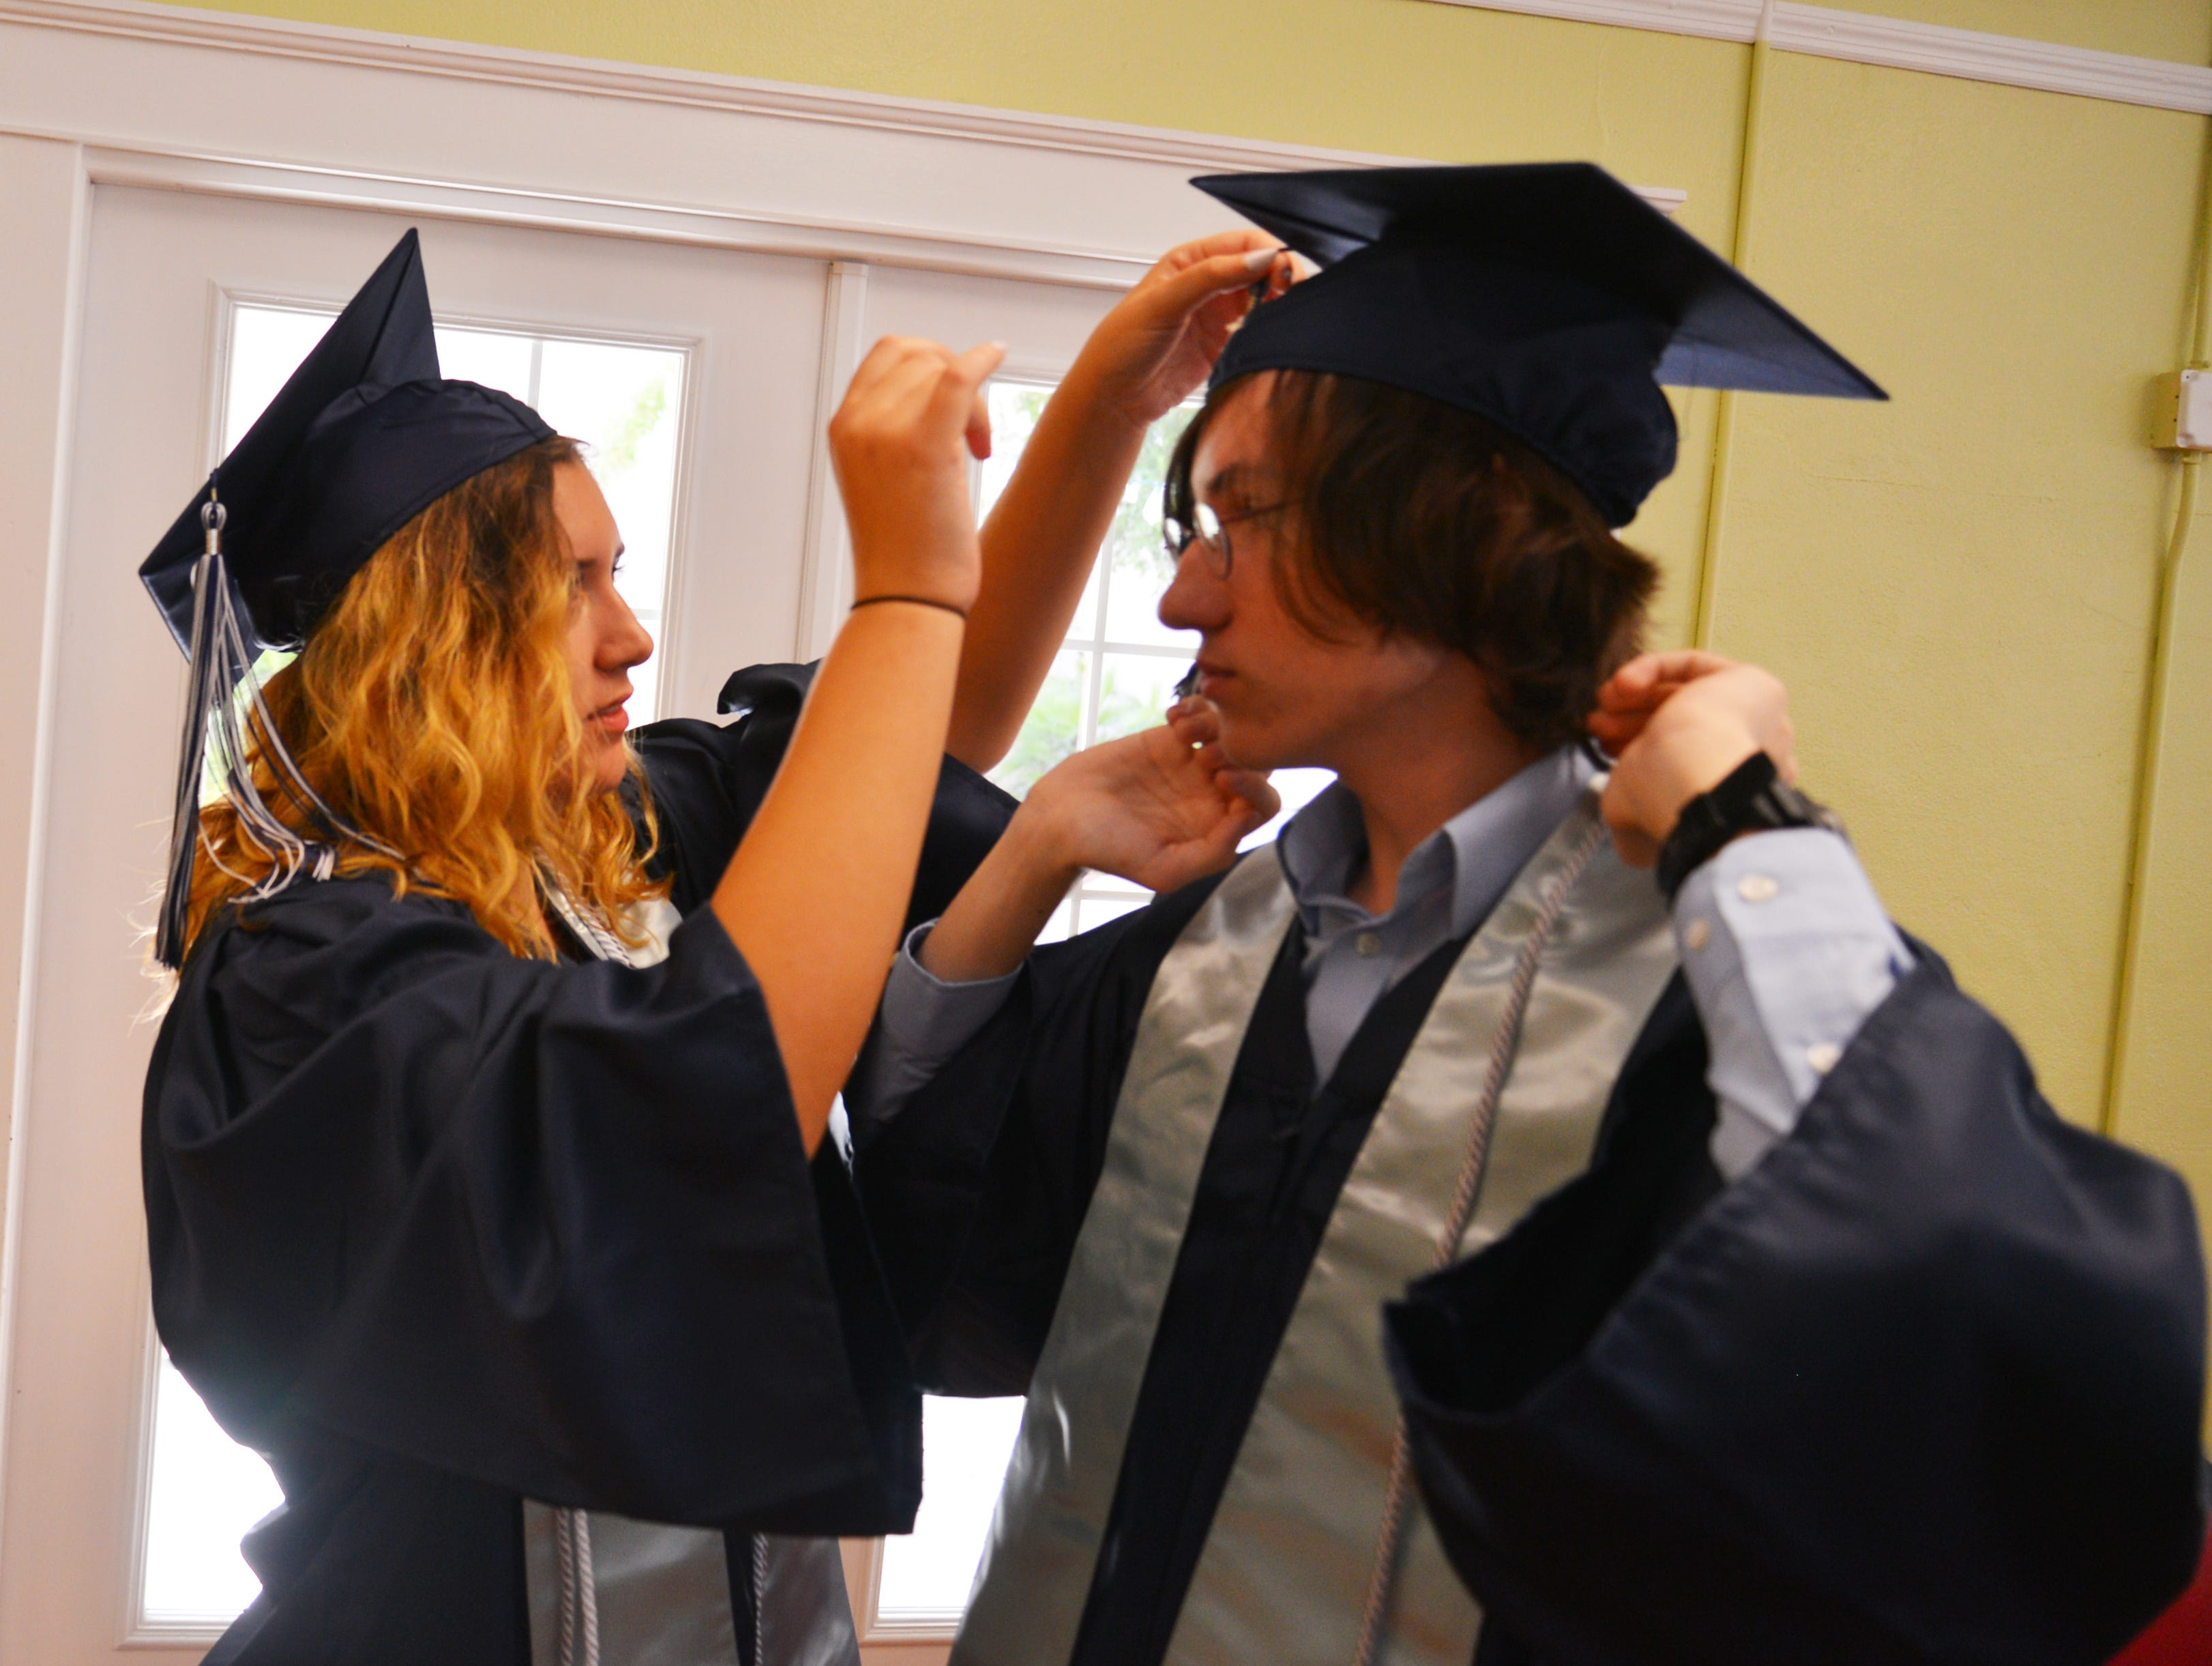 Florida Preparatory Academy held held their graduation ceremony Friday morning at the Henegar Center in Downtown Melbourne.